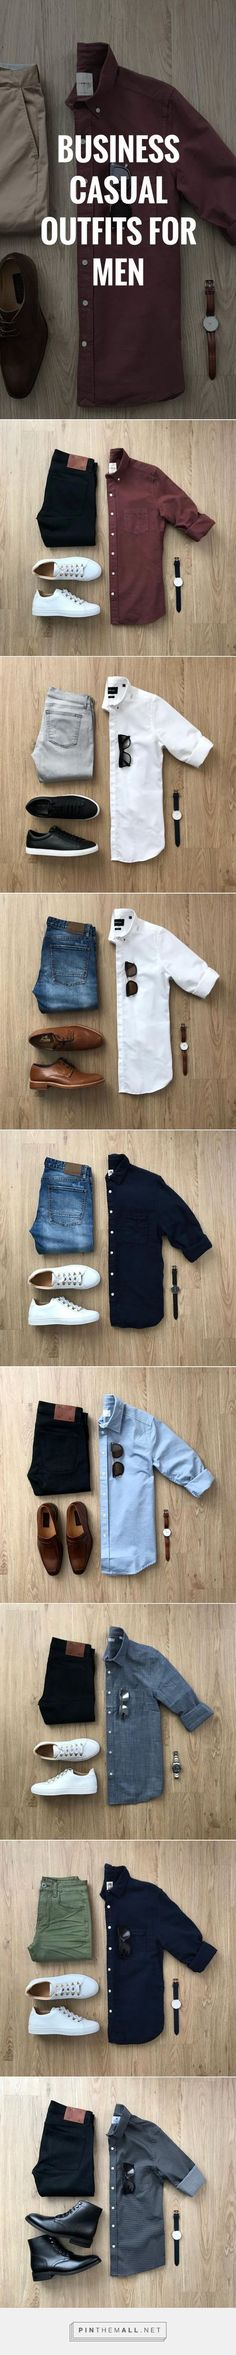 To Business Casual For Men How to wear business casual outfits for men. Everything you need to know about business casual men.How to wear business casual outfits for men. Everything you need to know about business casual men. Business Casual Attire For Men, Trajes Business Casual, Business Outfits, Business Clothes, Business Men, Business Style, Business Travel, Business Ideas, Outfits Casual